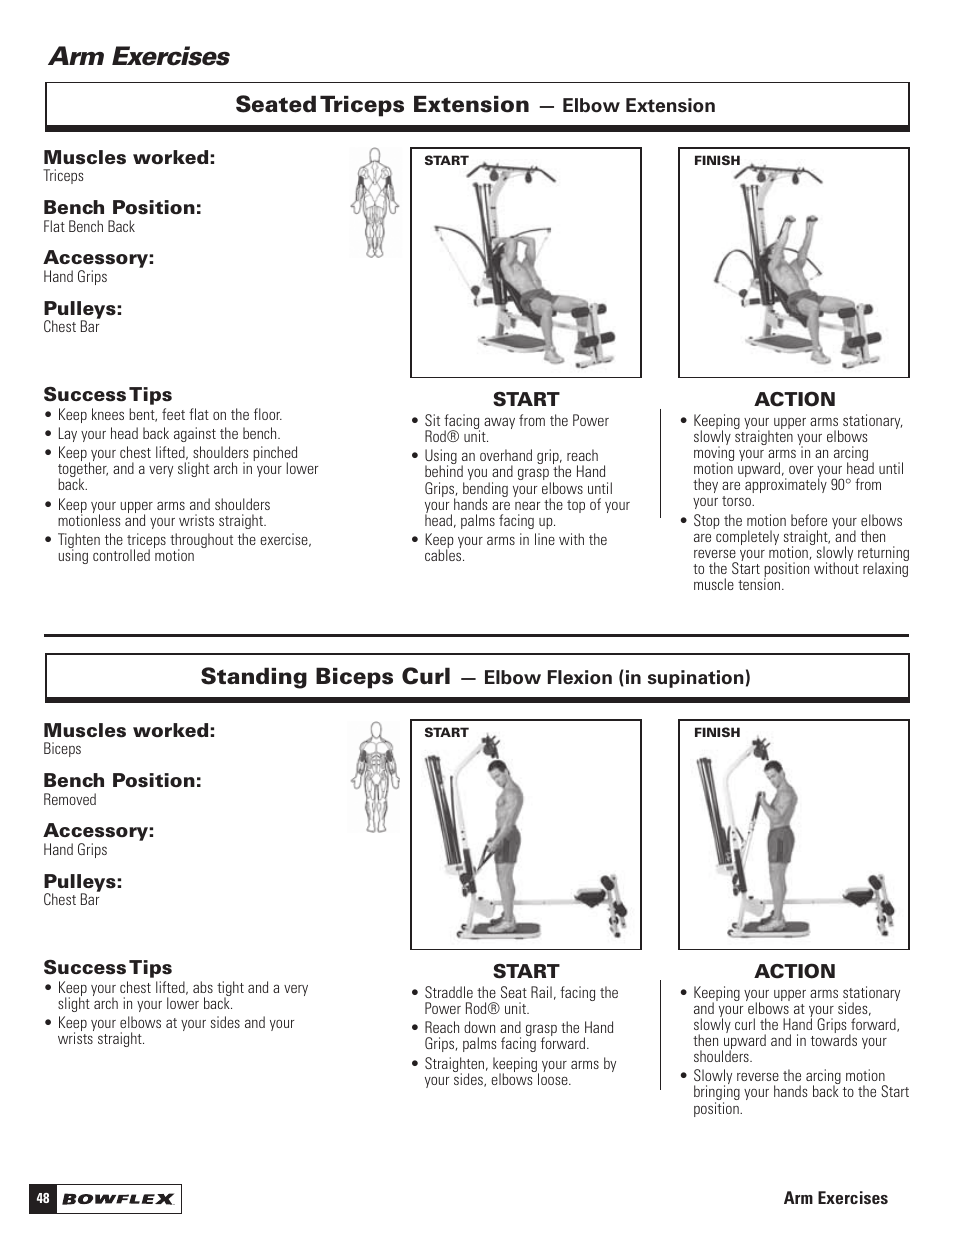 arm exercises standing biceps curl seated triceps extension rh manualsdir com bowflex motivator 2 manual to print for free Bowflex Motivator 2 Poster